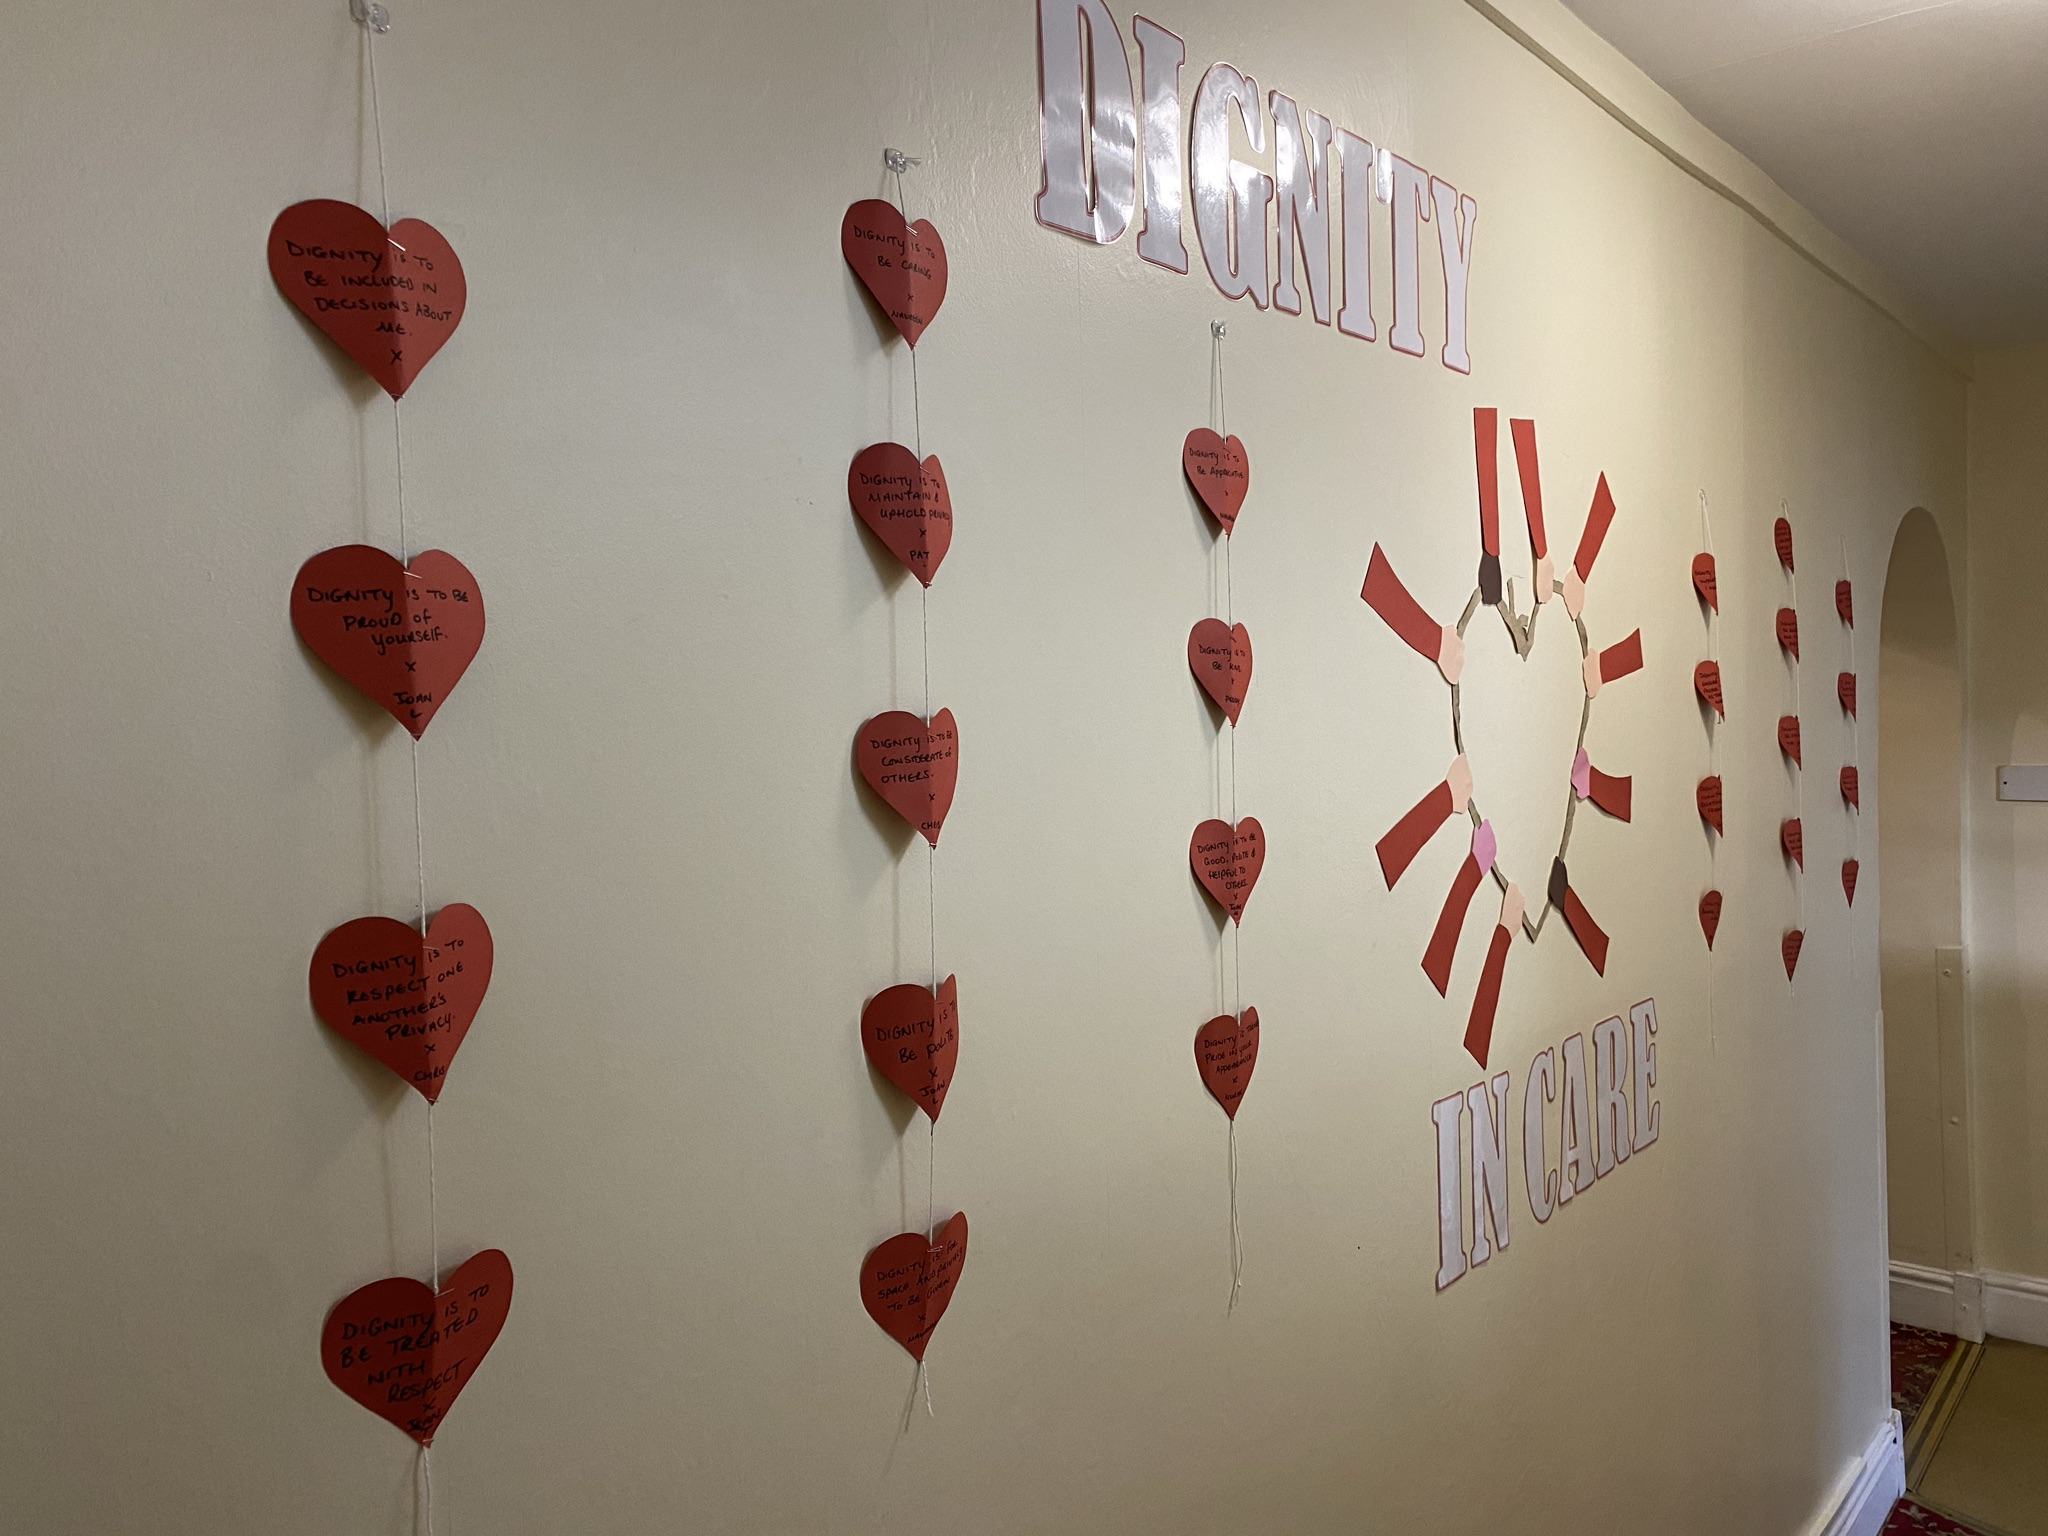 Dignity Day Decorations - 01.02.21